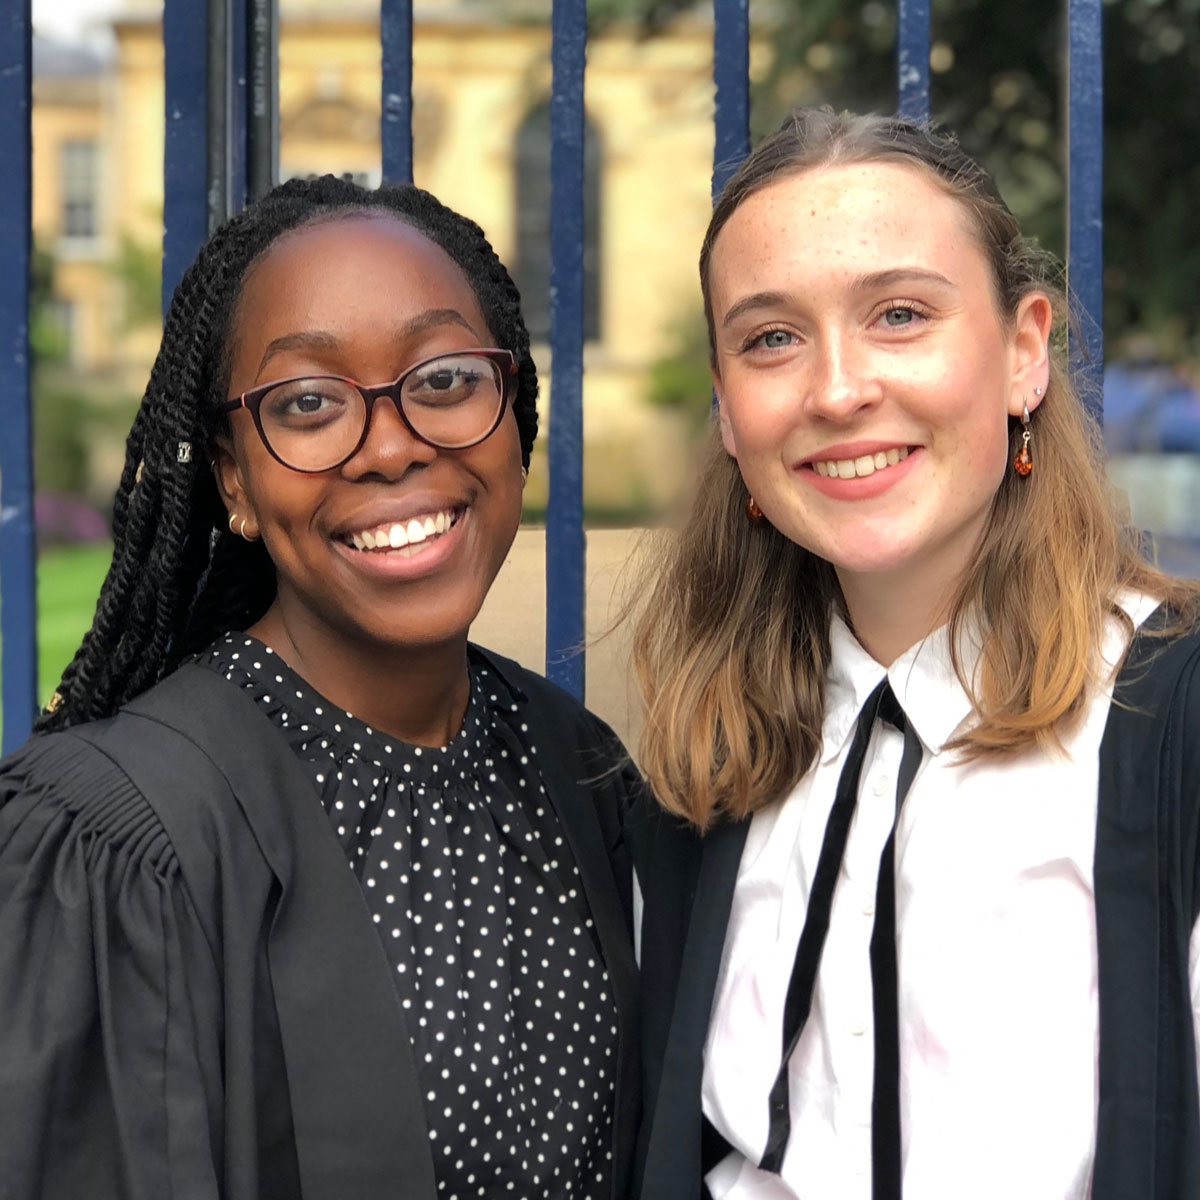 Claire Otasowie and Ellie Hopkinson in sub fusc smiling on matriculation day